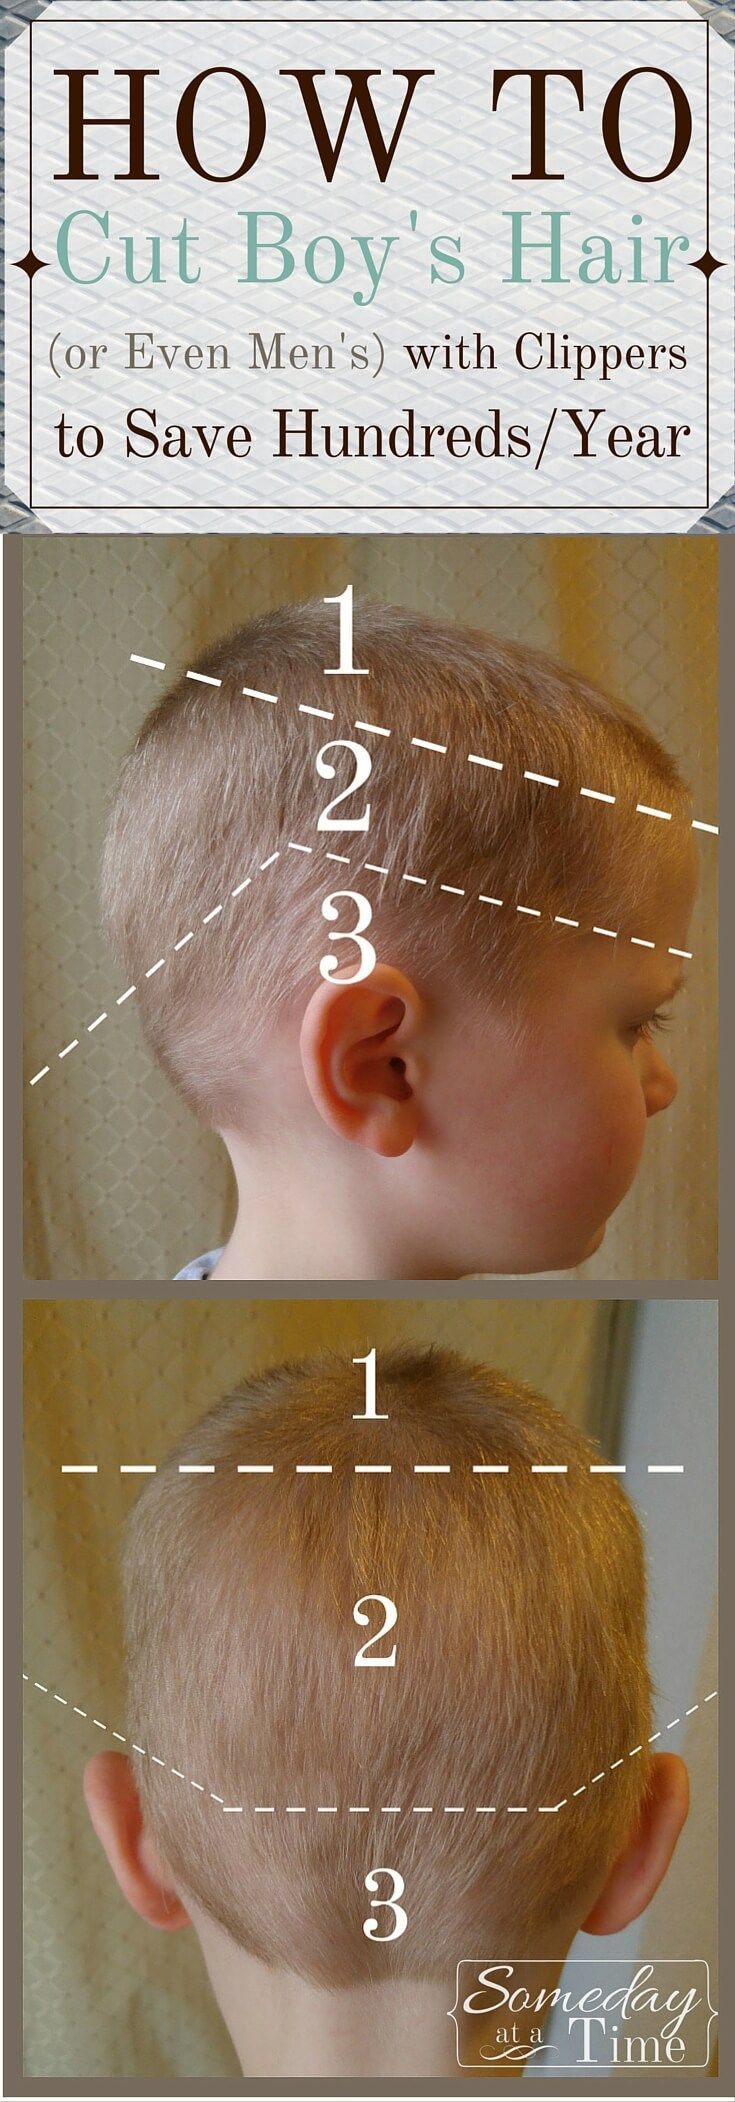 Boy hairstyle in 2018 how to cut boy s hair or even men s with clippers someday at a time